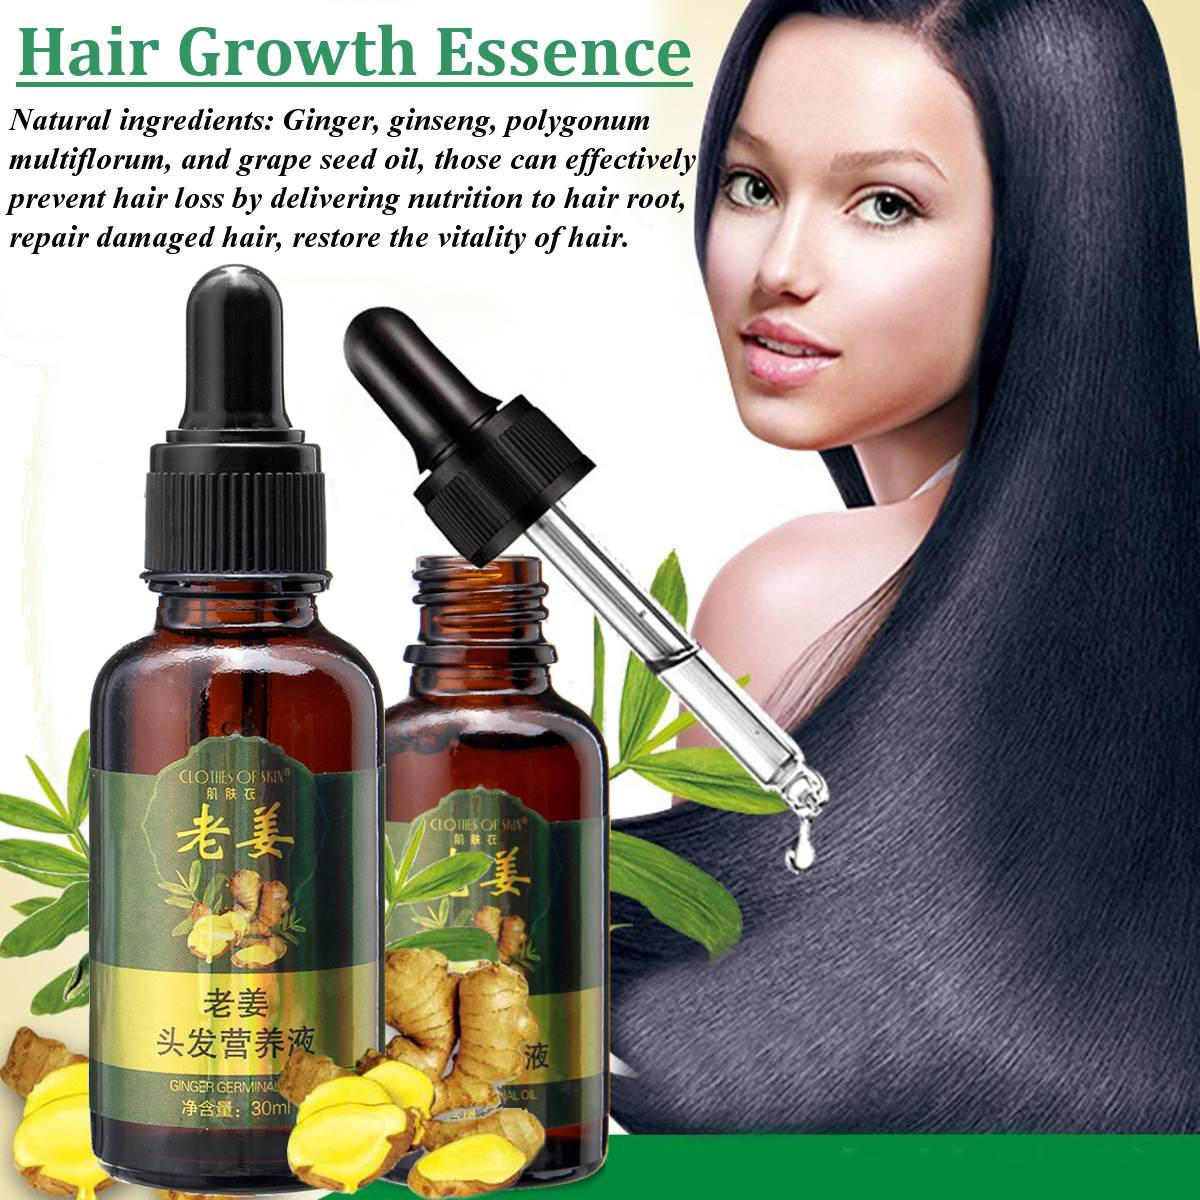 Hot Sales Unisex Anti Hair Loss Treatment Serum Ginger Extract Hair Regrowth Organic Beard Oil Growing Men Women Hair Care